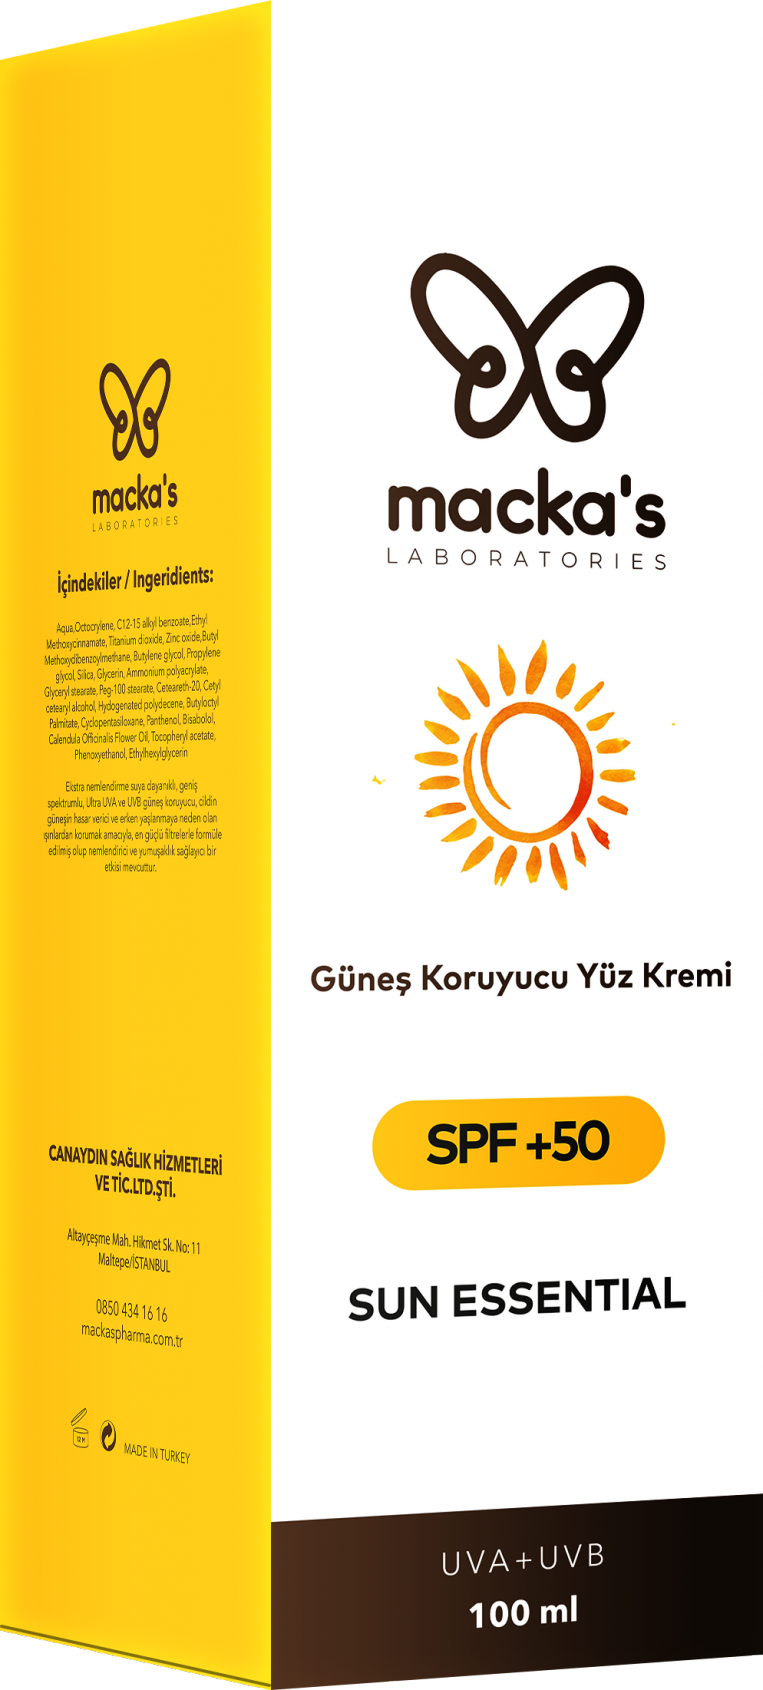 SUN ESSENTIAL 100 ml